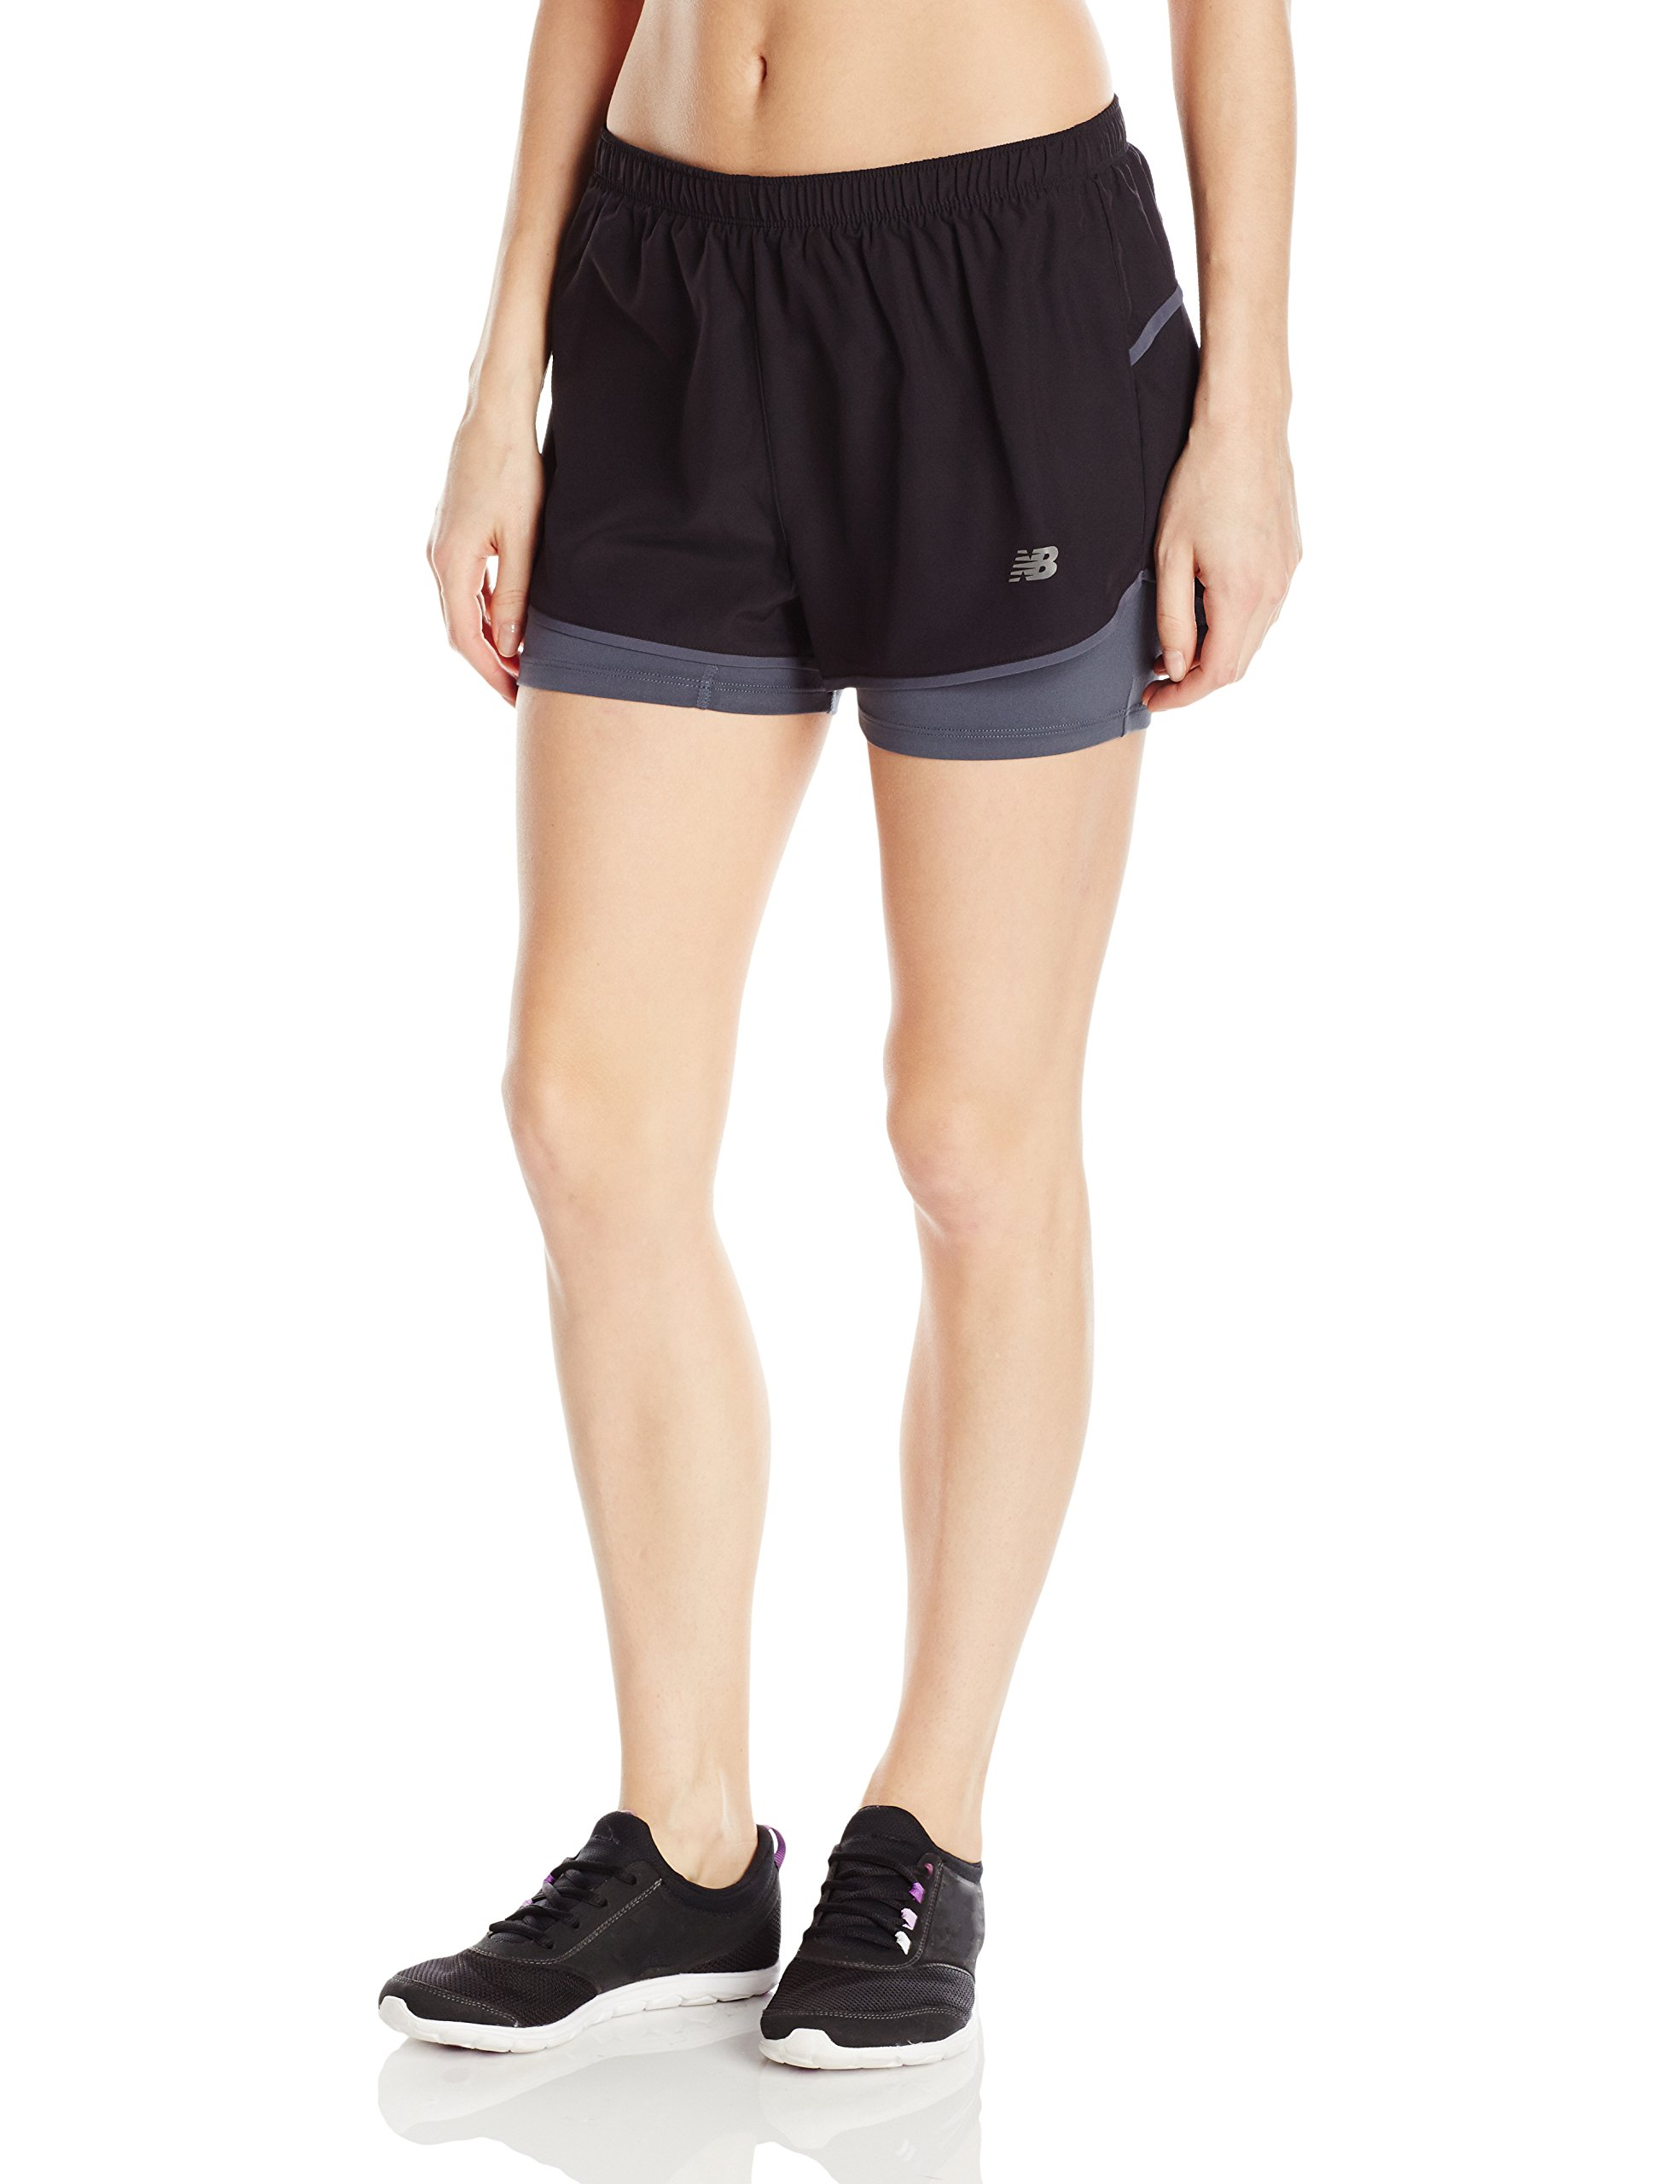 New Balance Womens 3'' 2-in-1 Woven Short, Black, Large